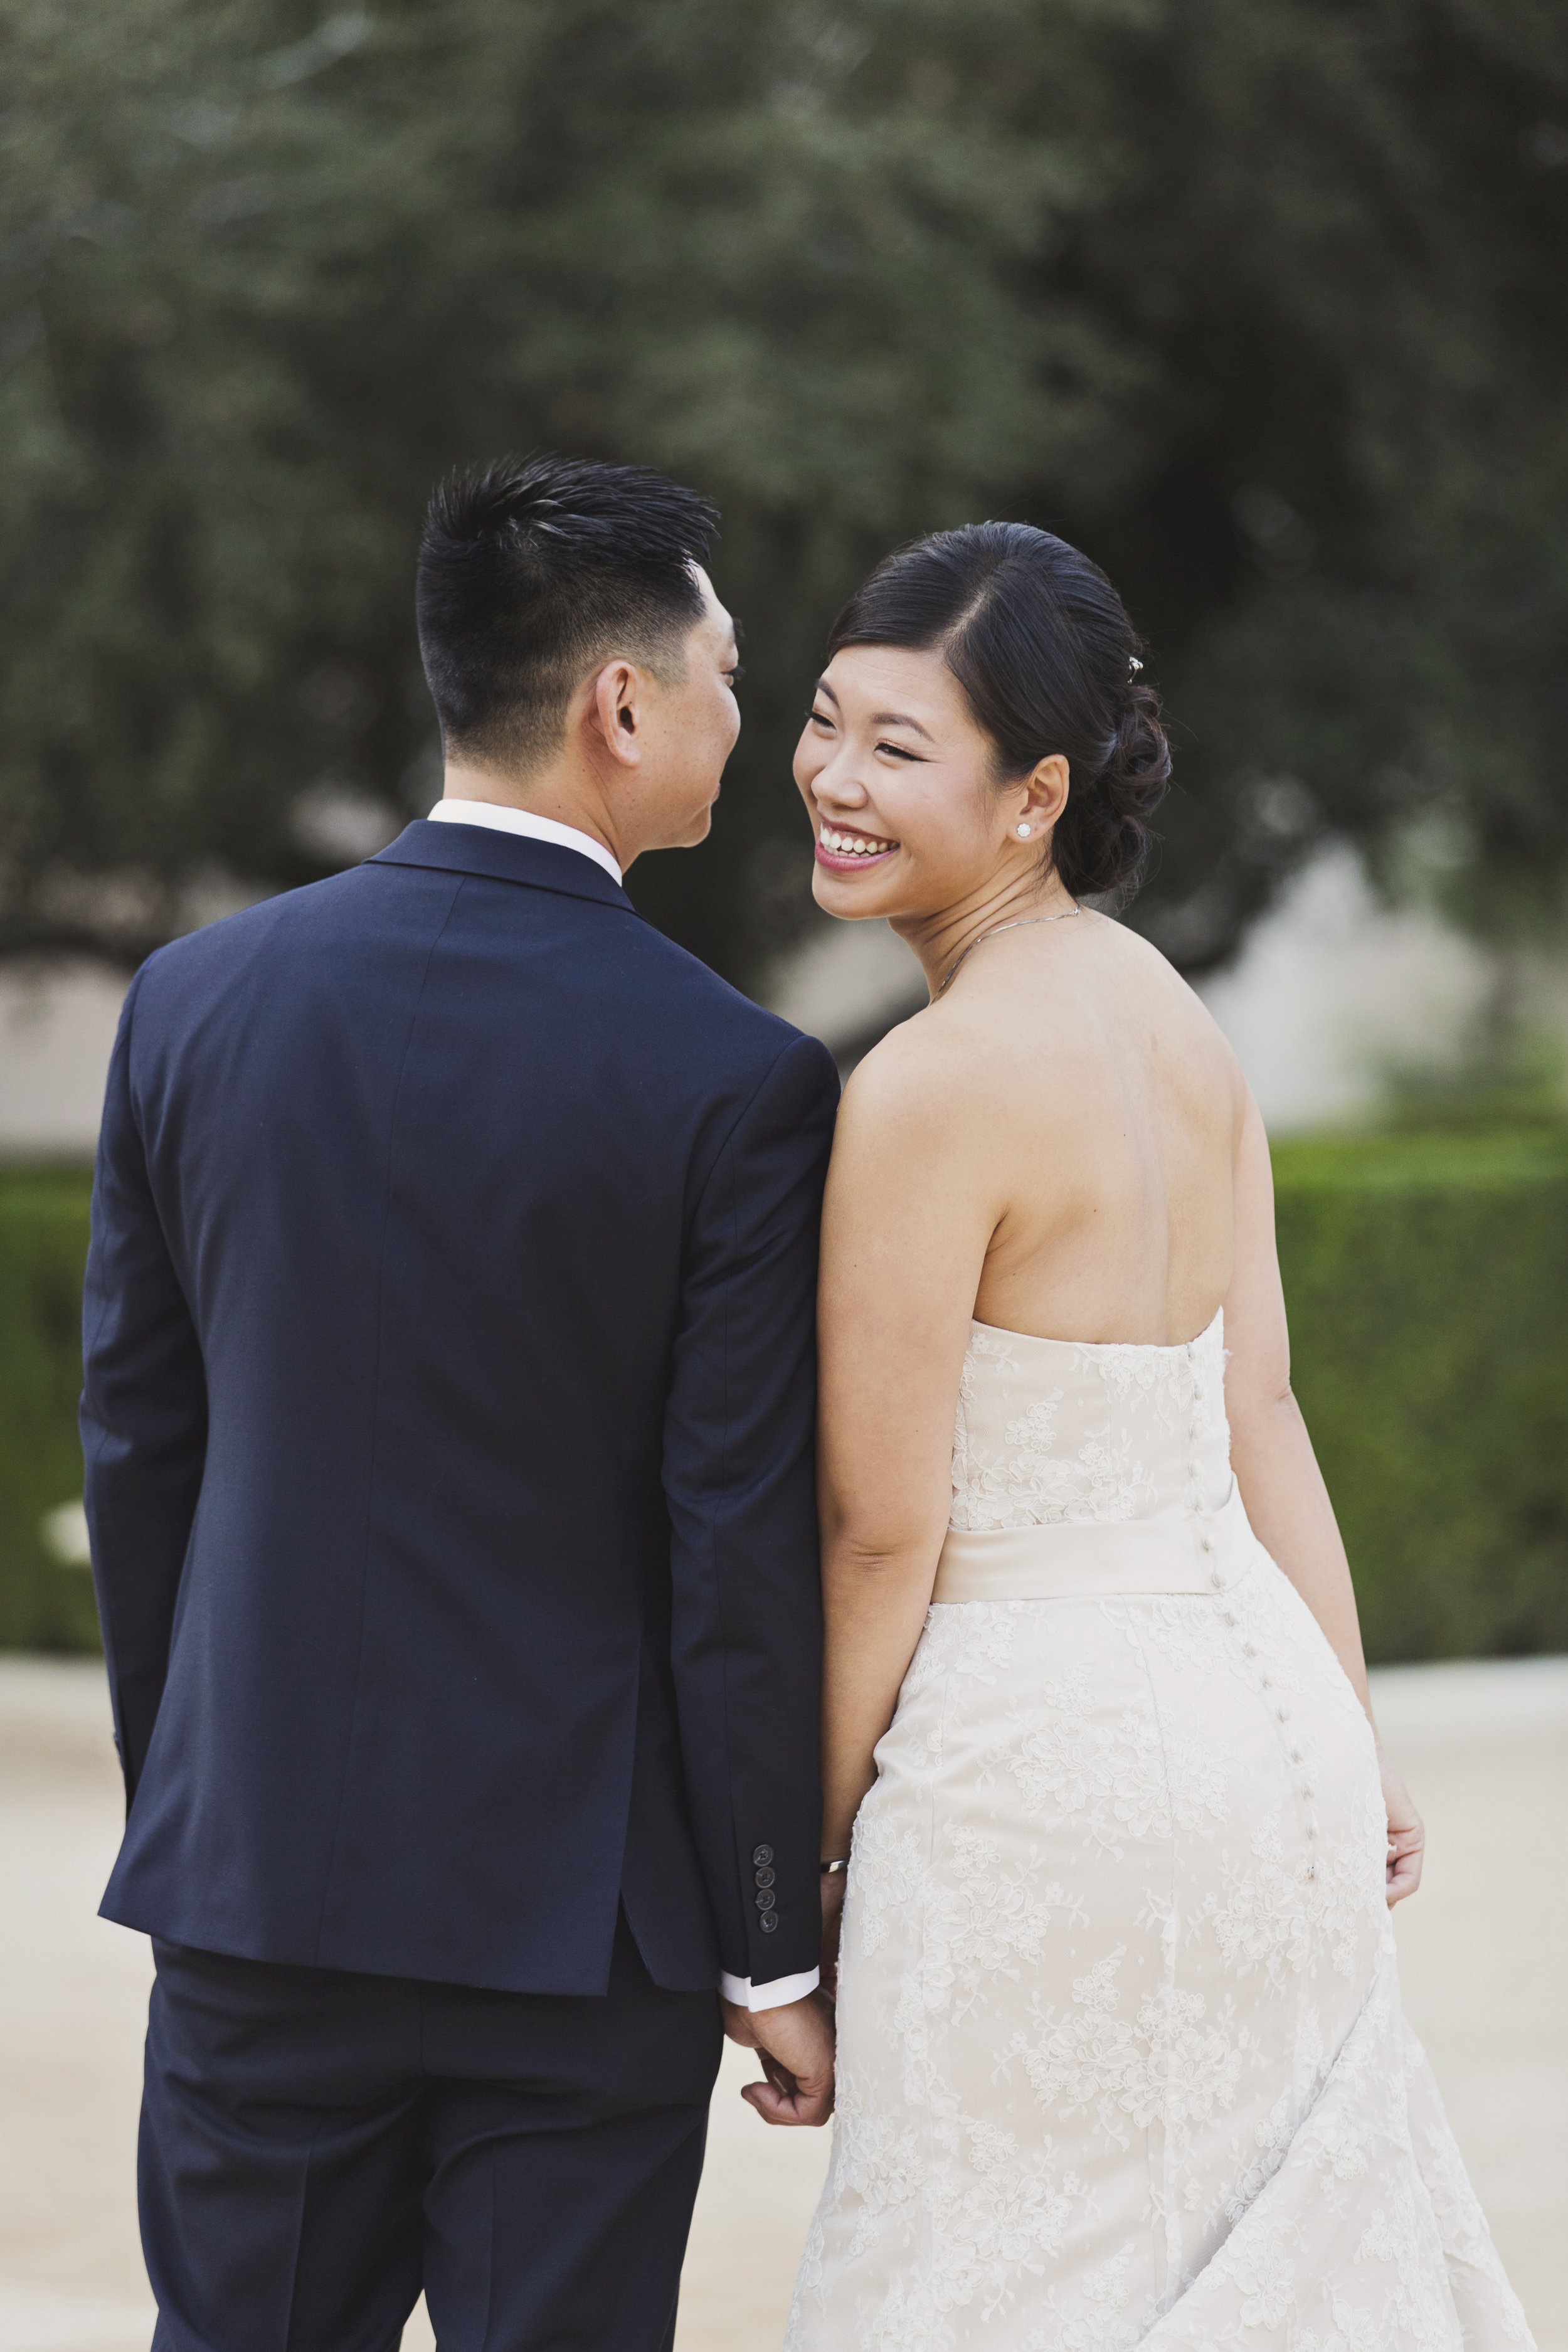 Beautiful Traditional Modern Chinese Wedding sweet moment caught between bride and groom.jpg